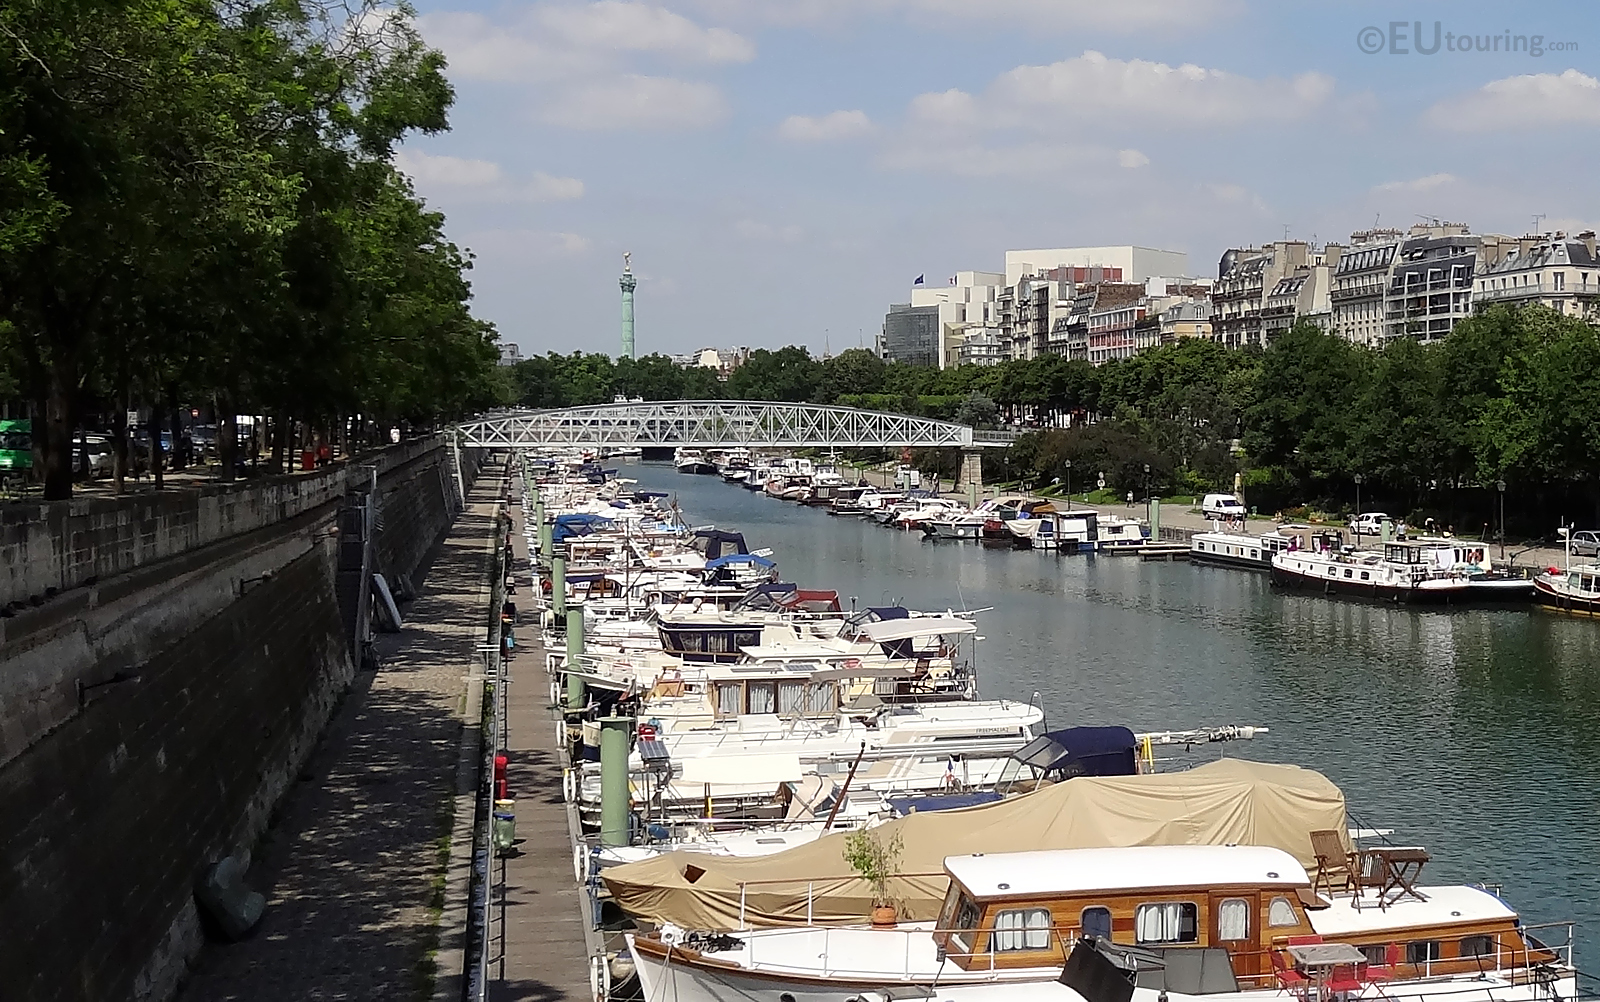 Passerelle Mornay and boats